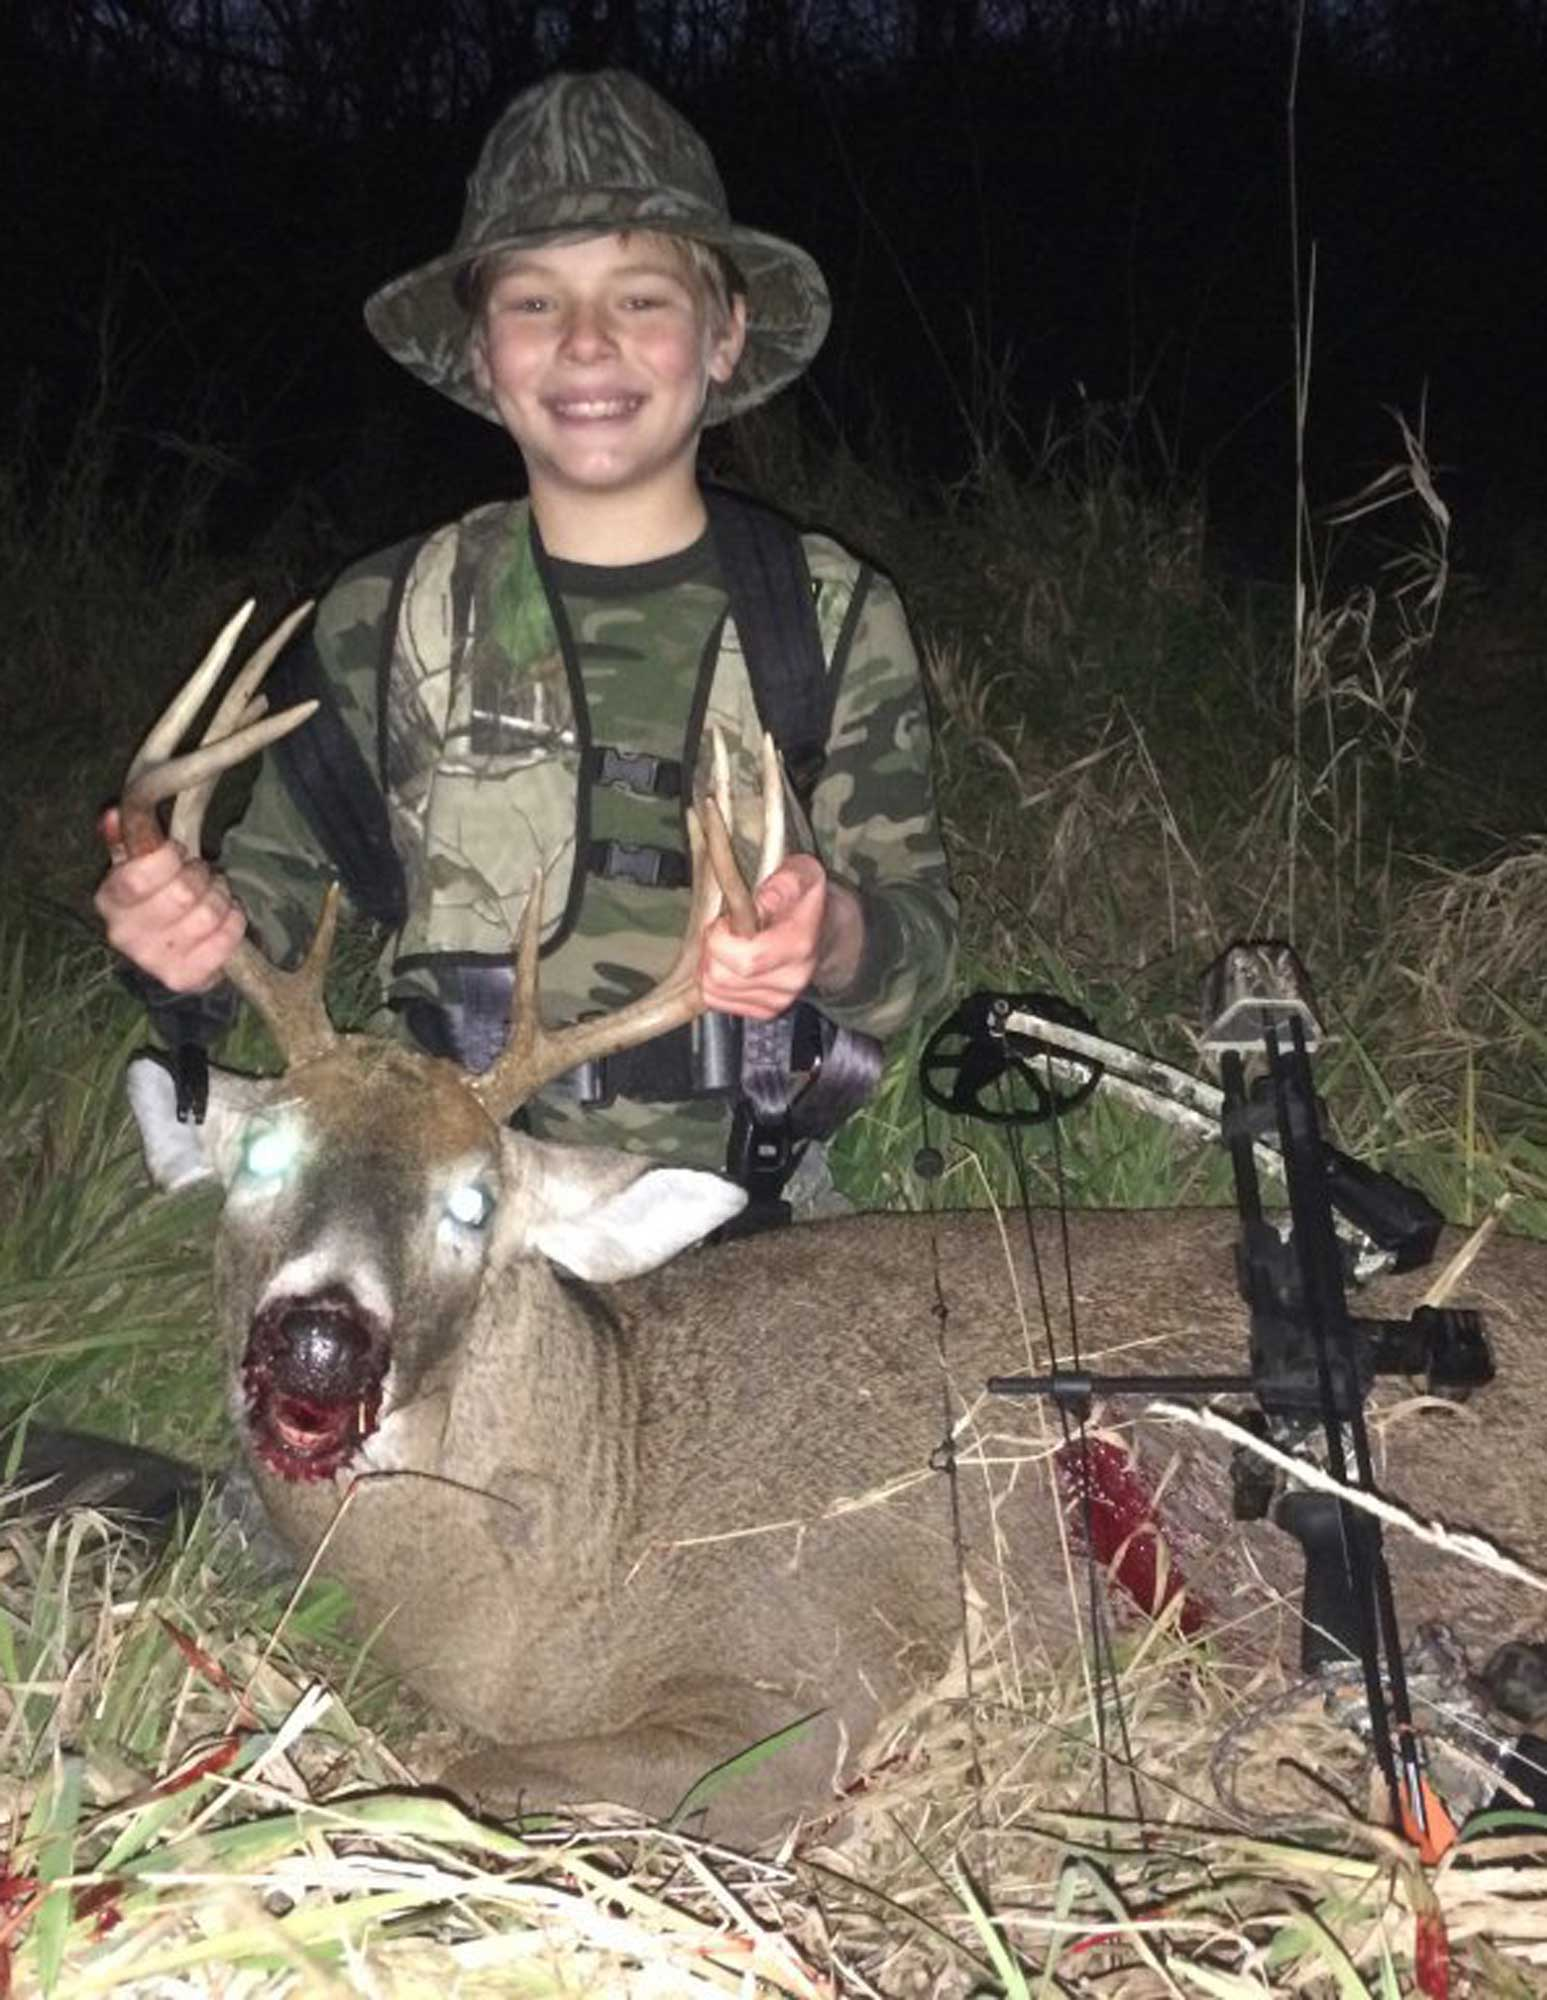 11 year old bowhunter